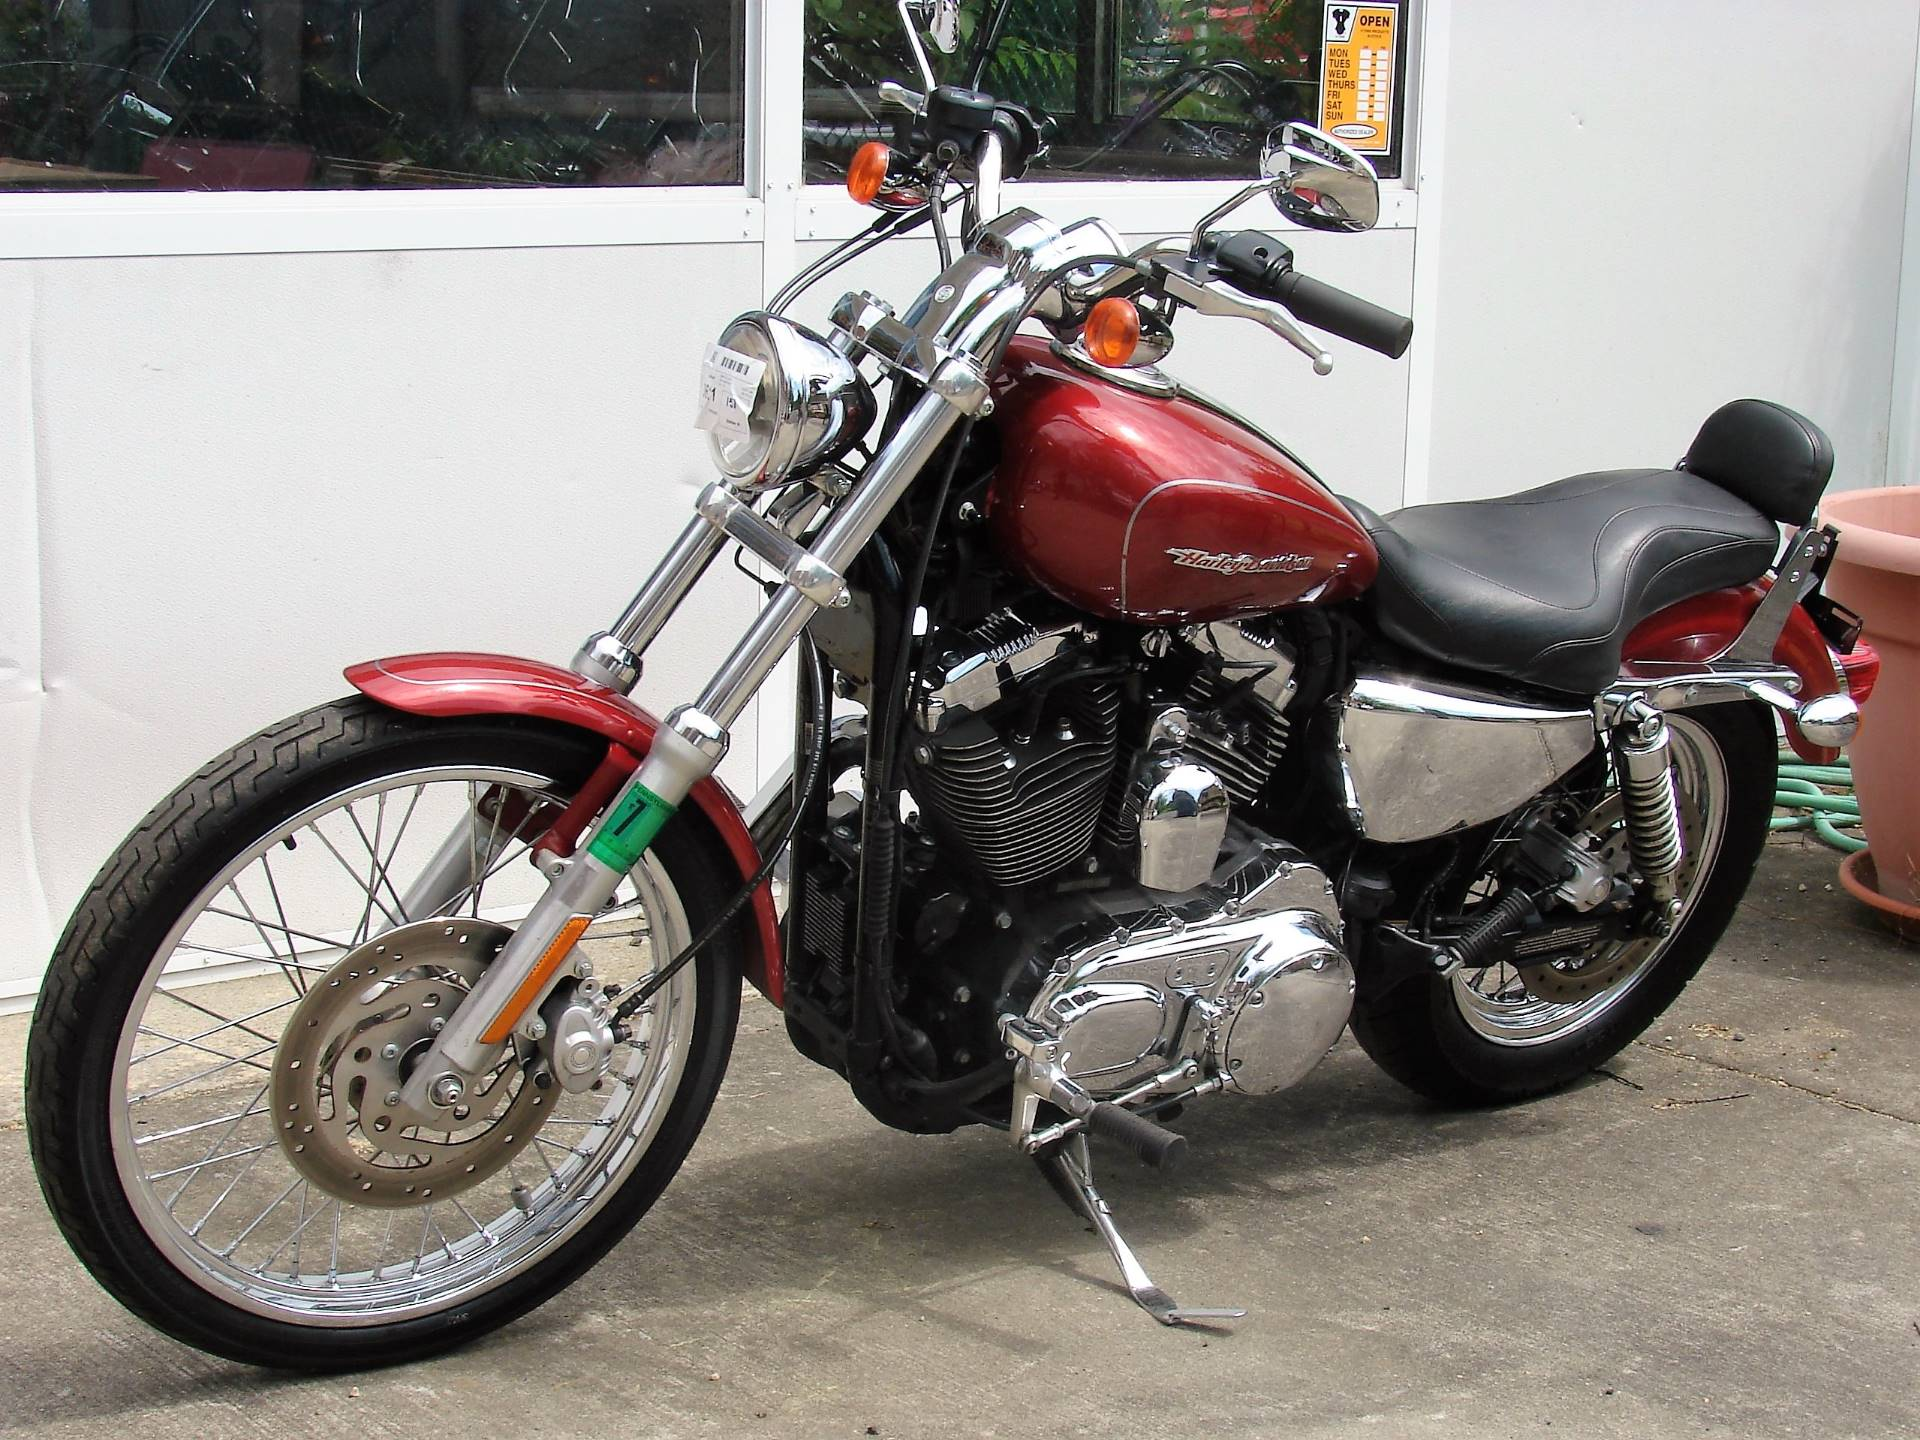 2006 Harley-Davidson XL 1200C Sportster Custom in Williamstown, New Jersey - Photo 8